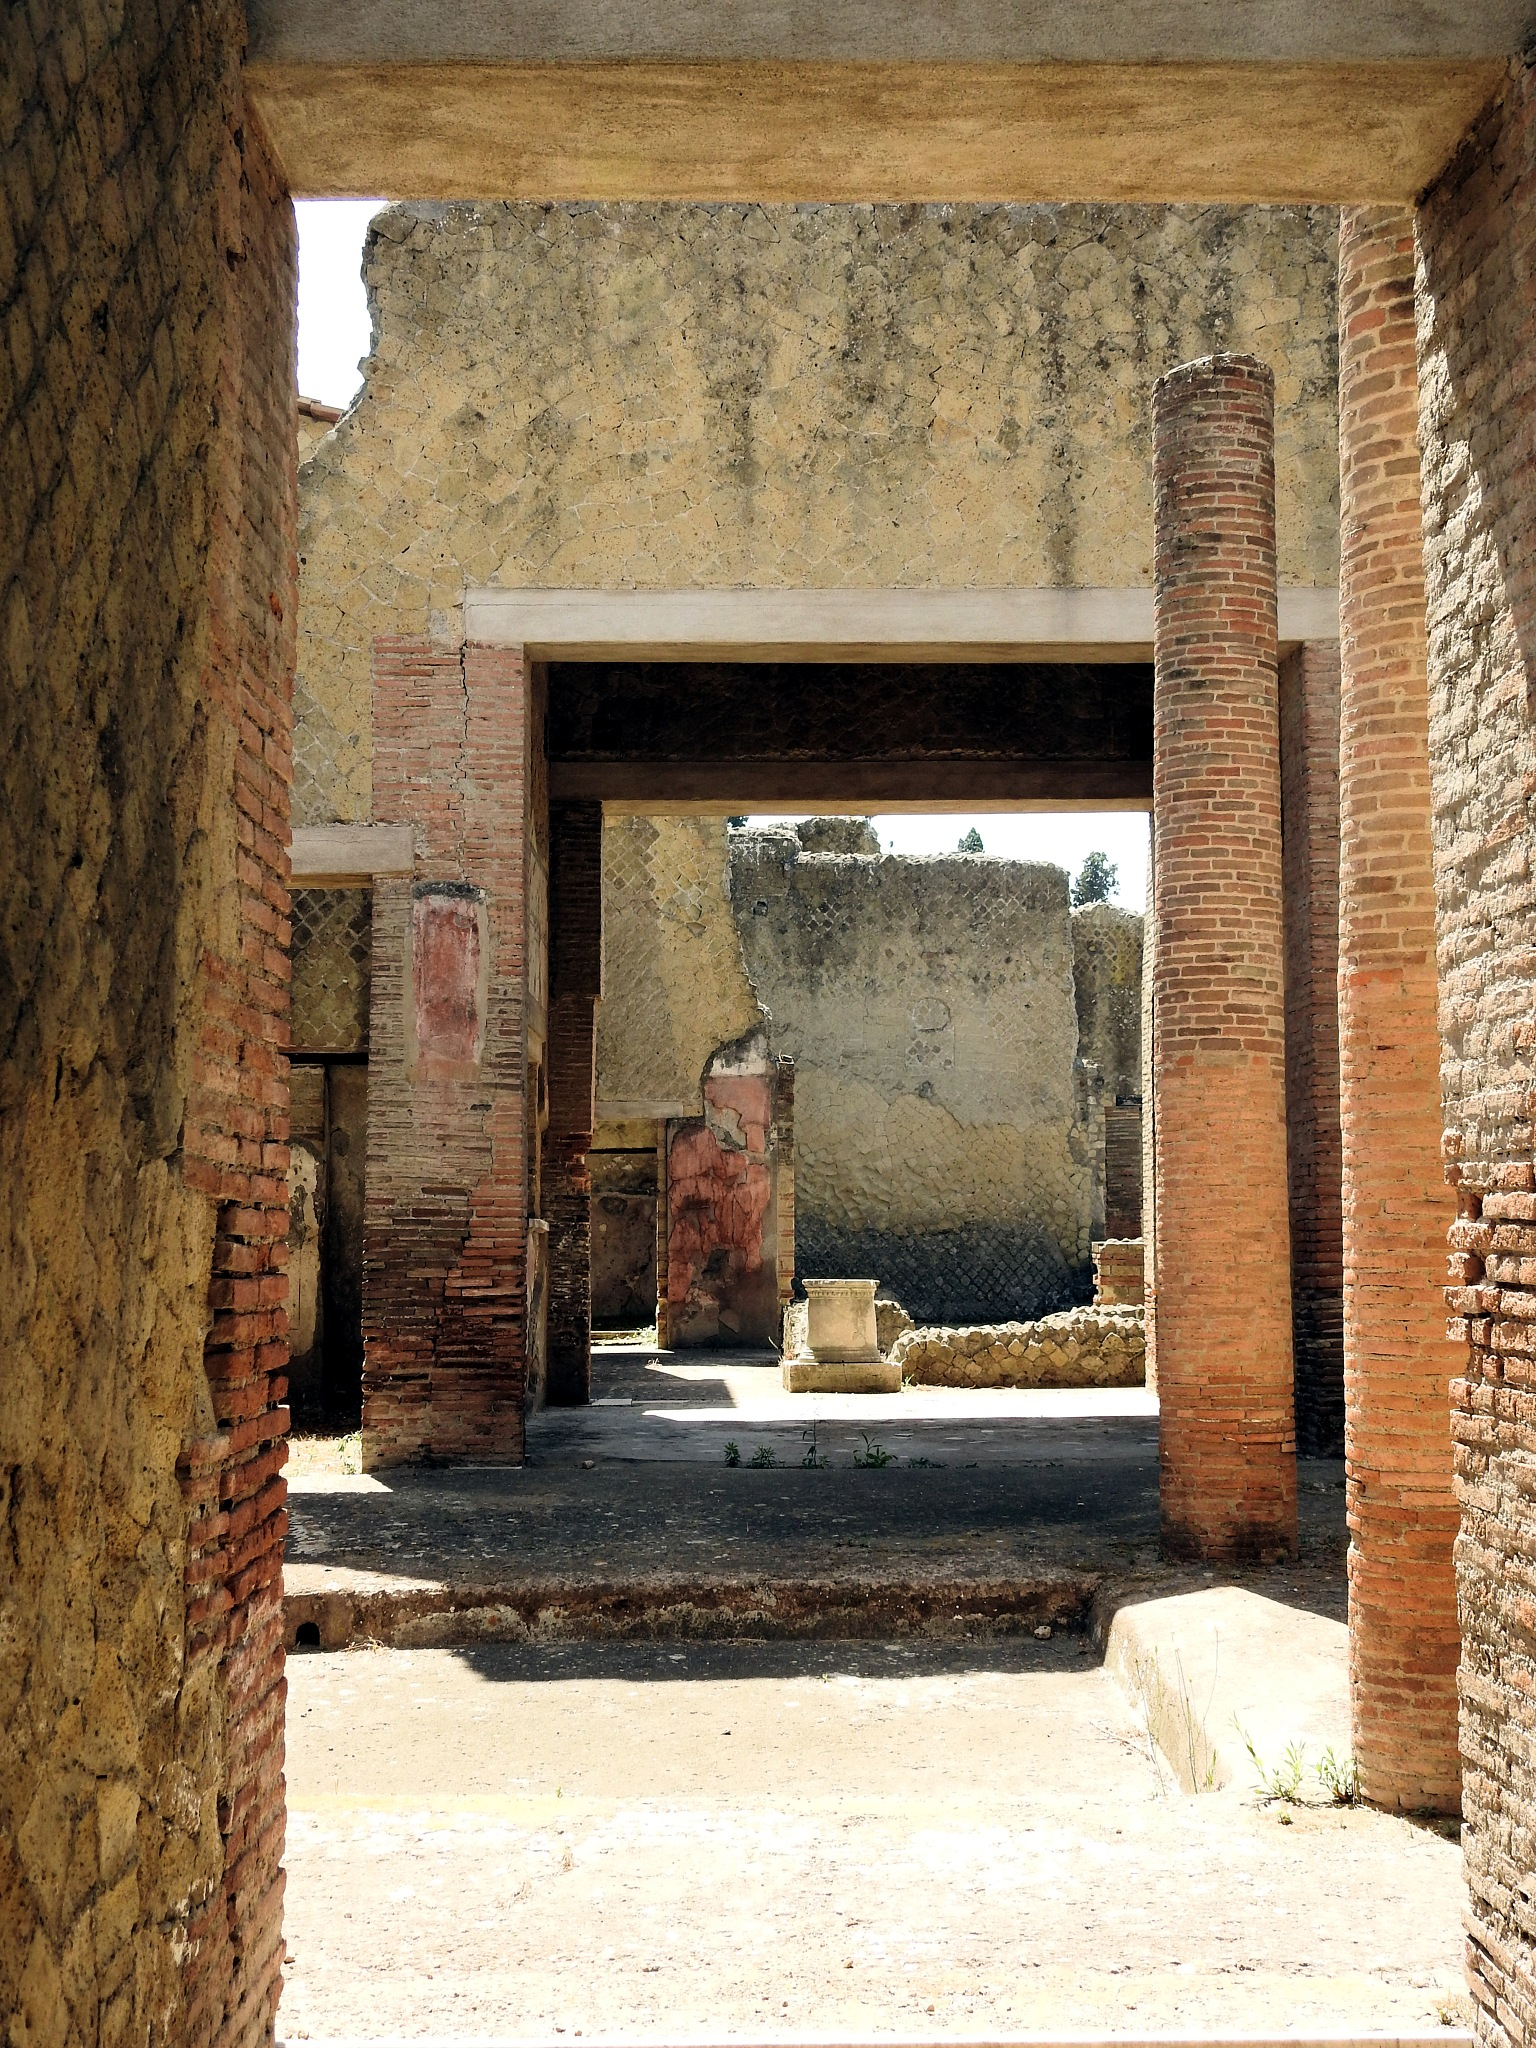 Hercolaneum Ercolano - Bricks and Walls by Arnaldo De Lisio